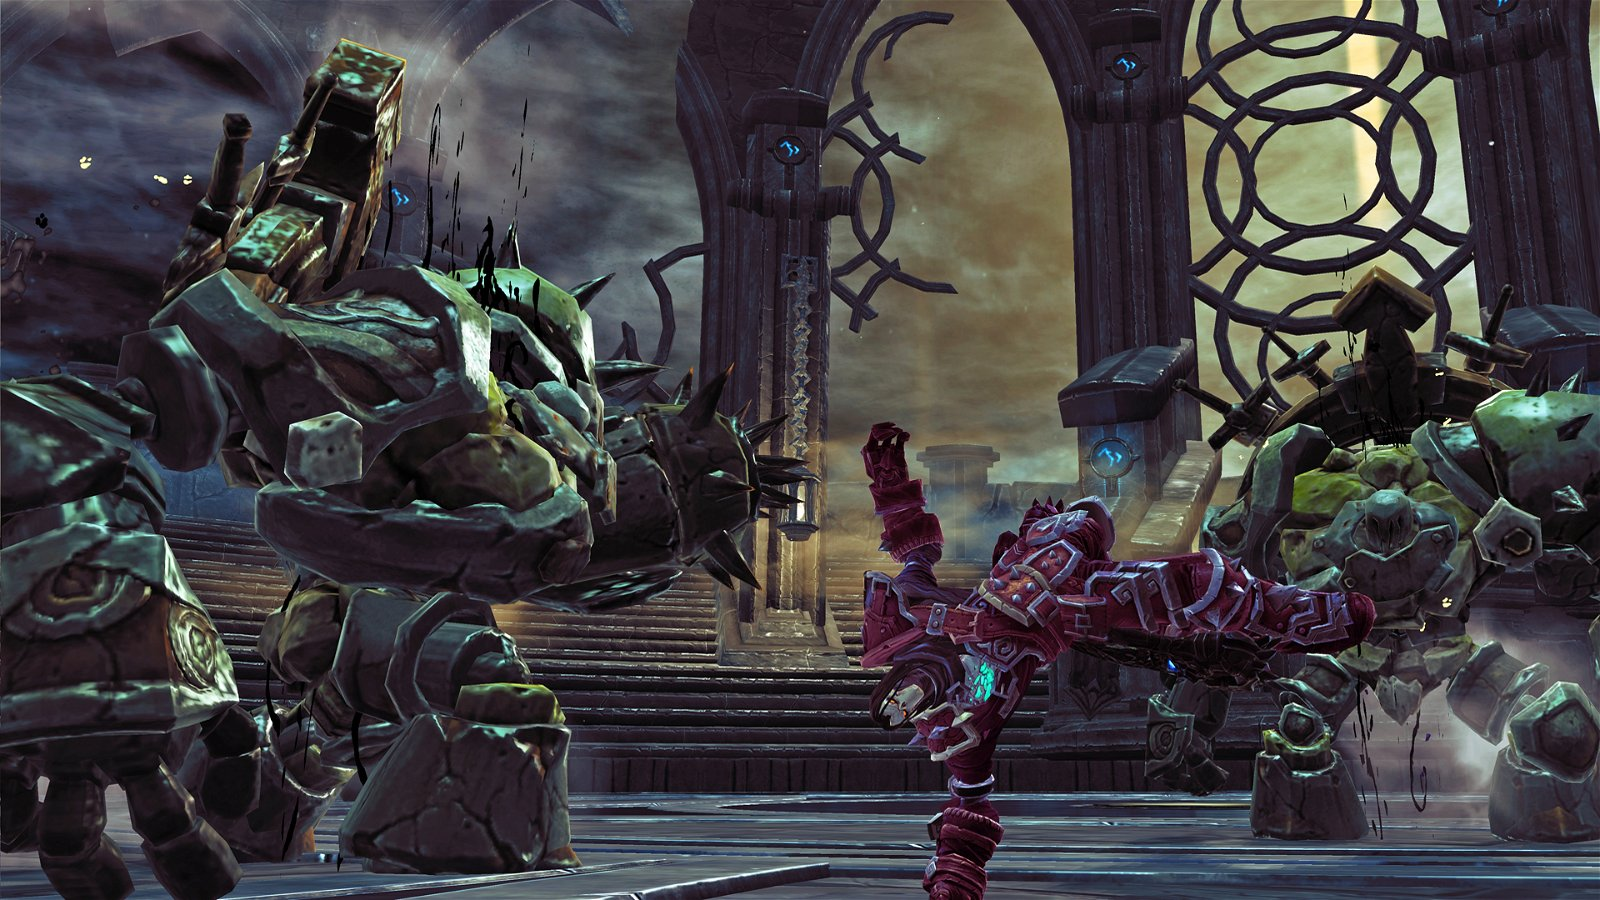 Darksiders Ii: Deathfinitive Edition Now Official - 2015-06-11 09:42:58